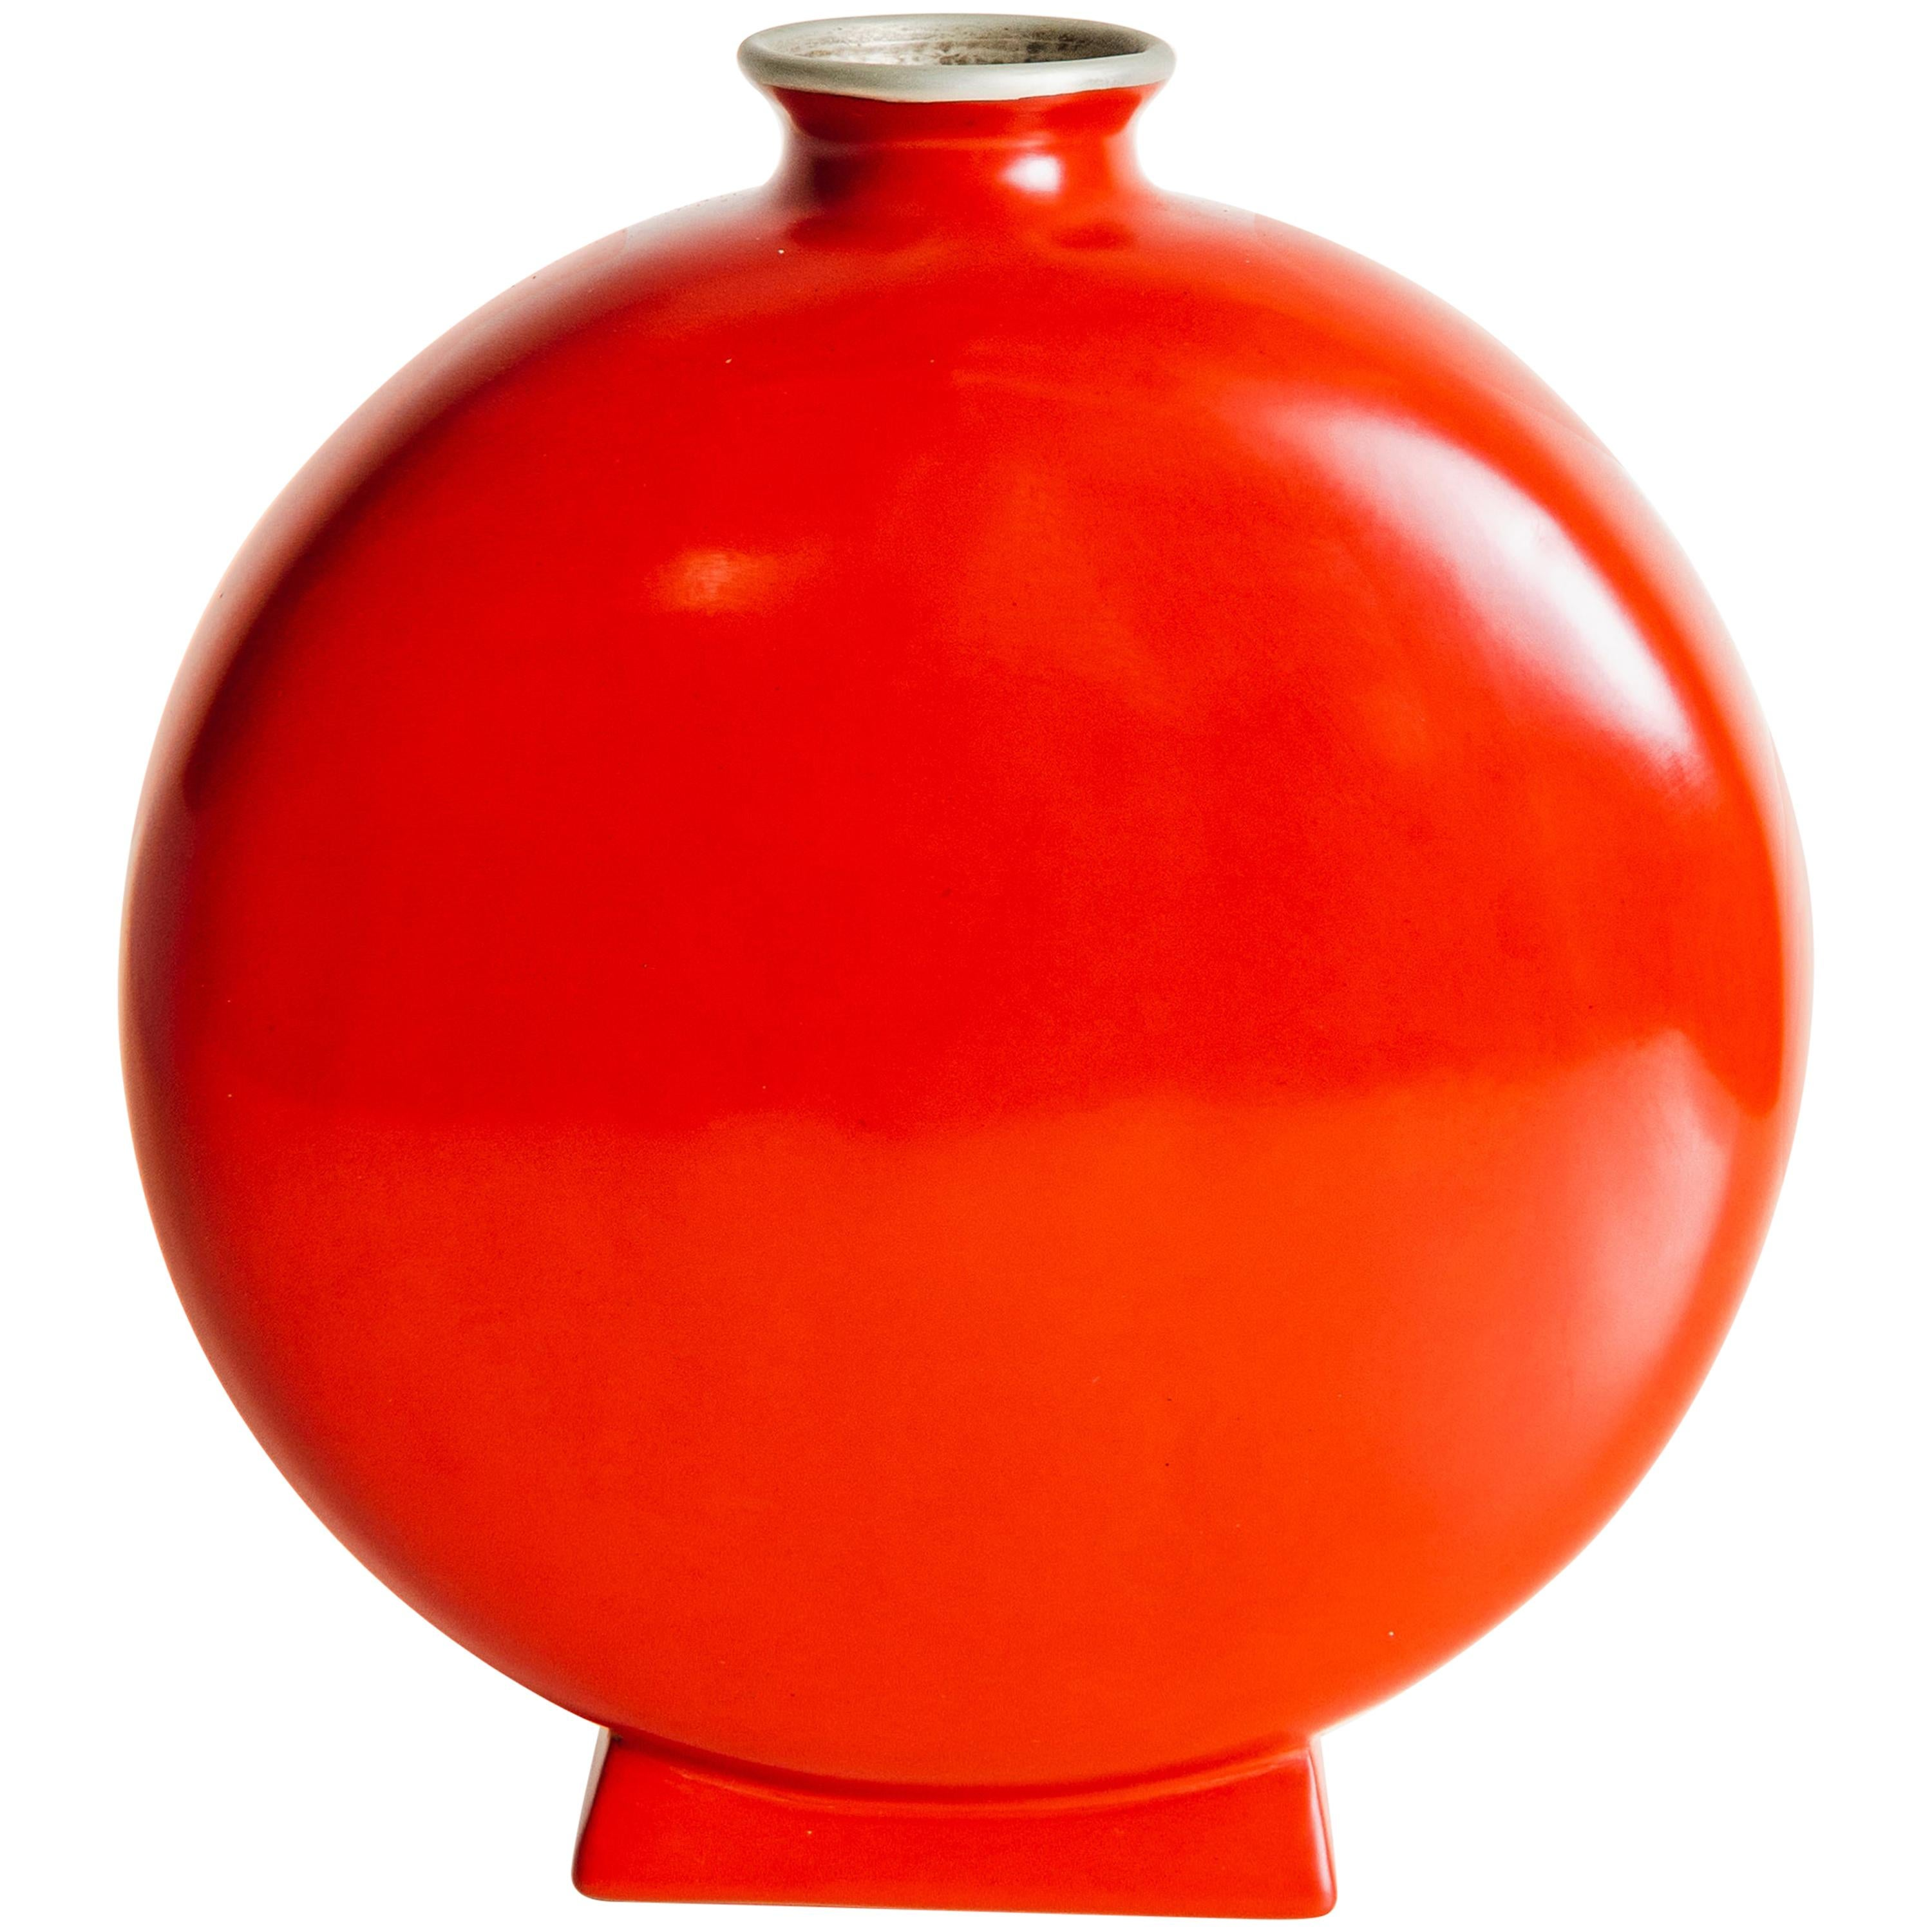 Bian Vase, Red Lacquer by Robert Kuo, Hand Repousse, Limited Edition